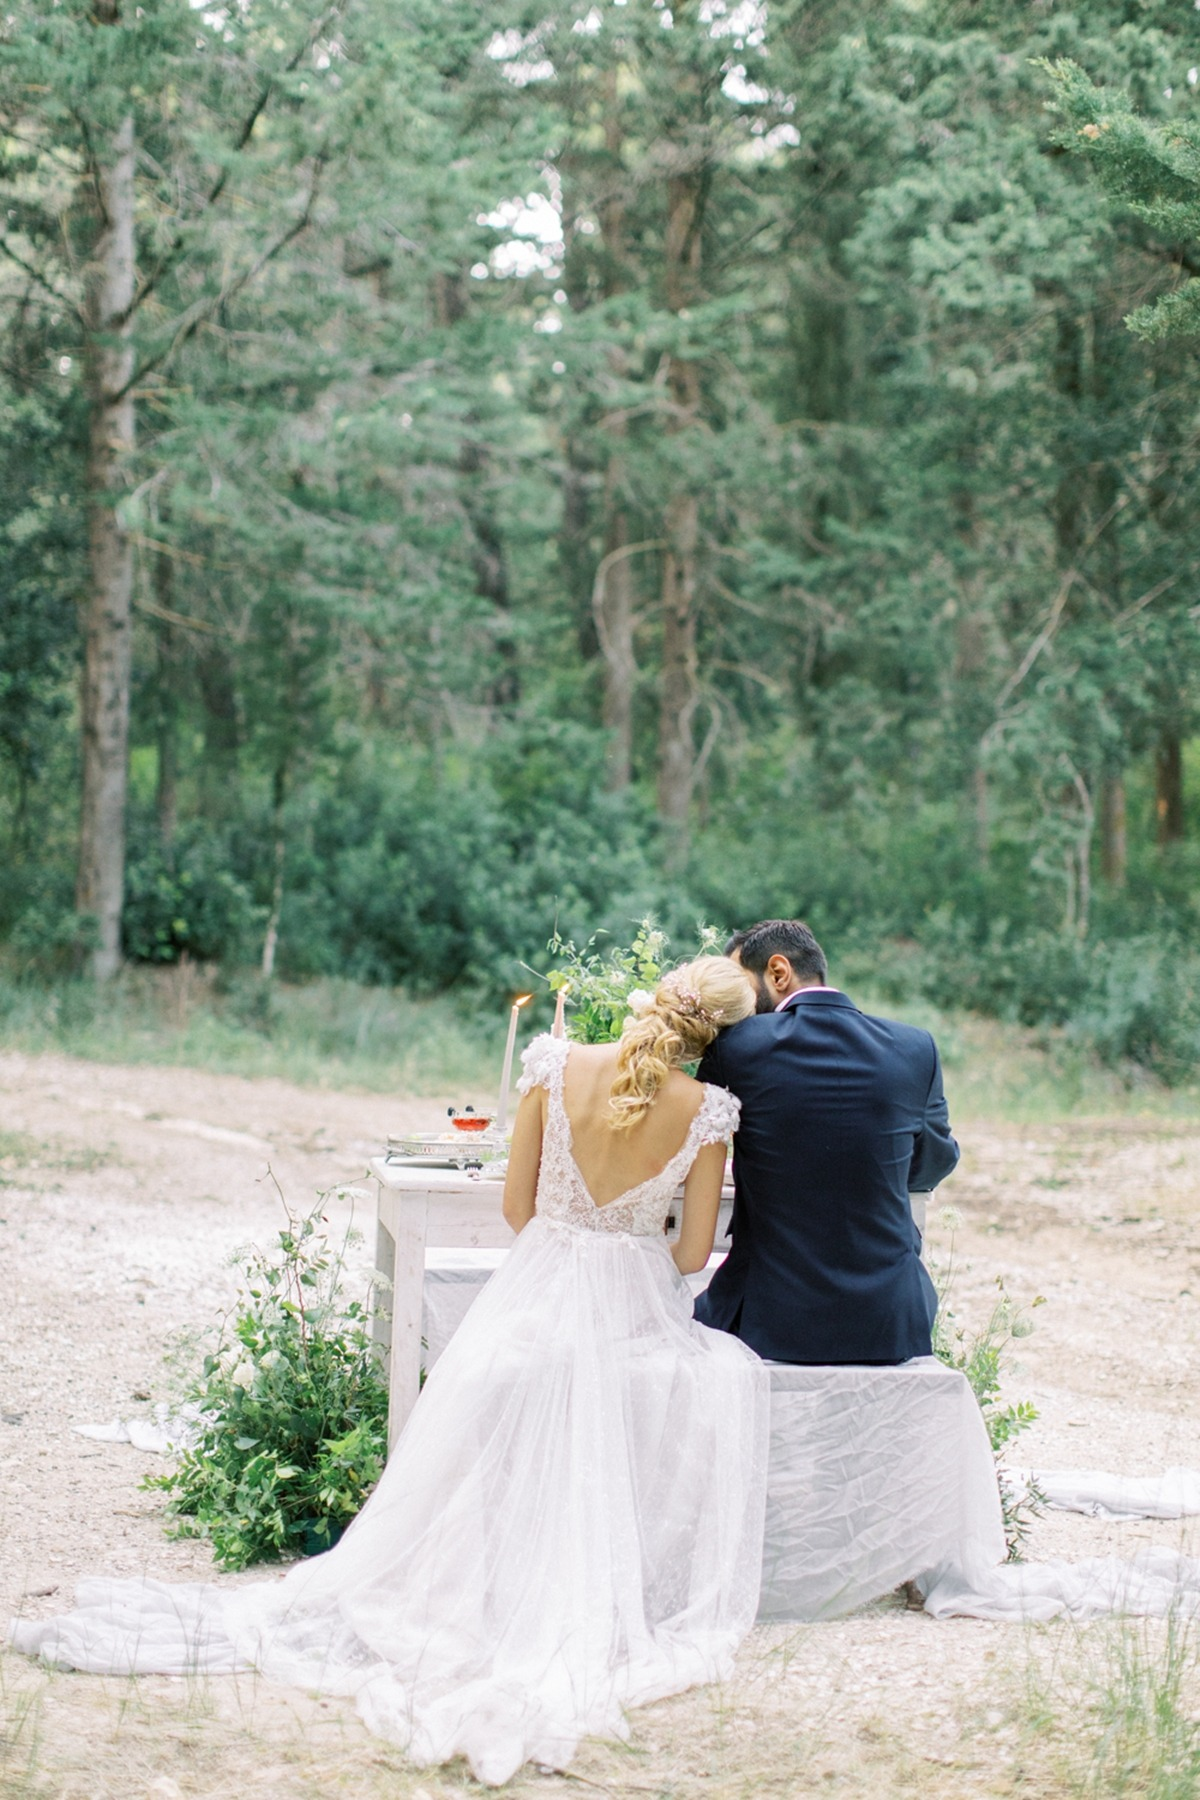 La Vie en Rose: An Old World Love Story Intimate Wedding Inspiration